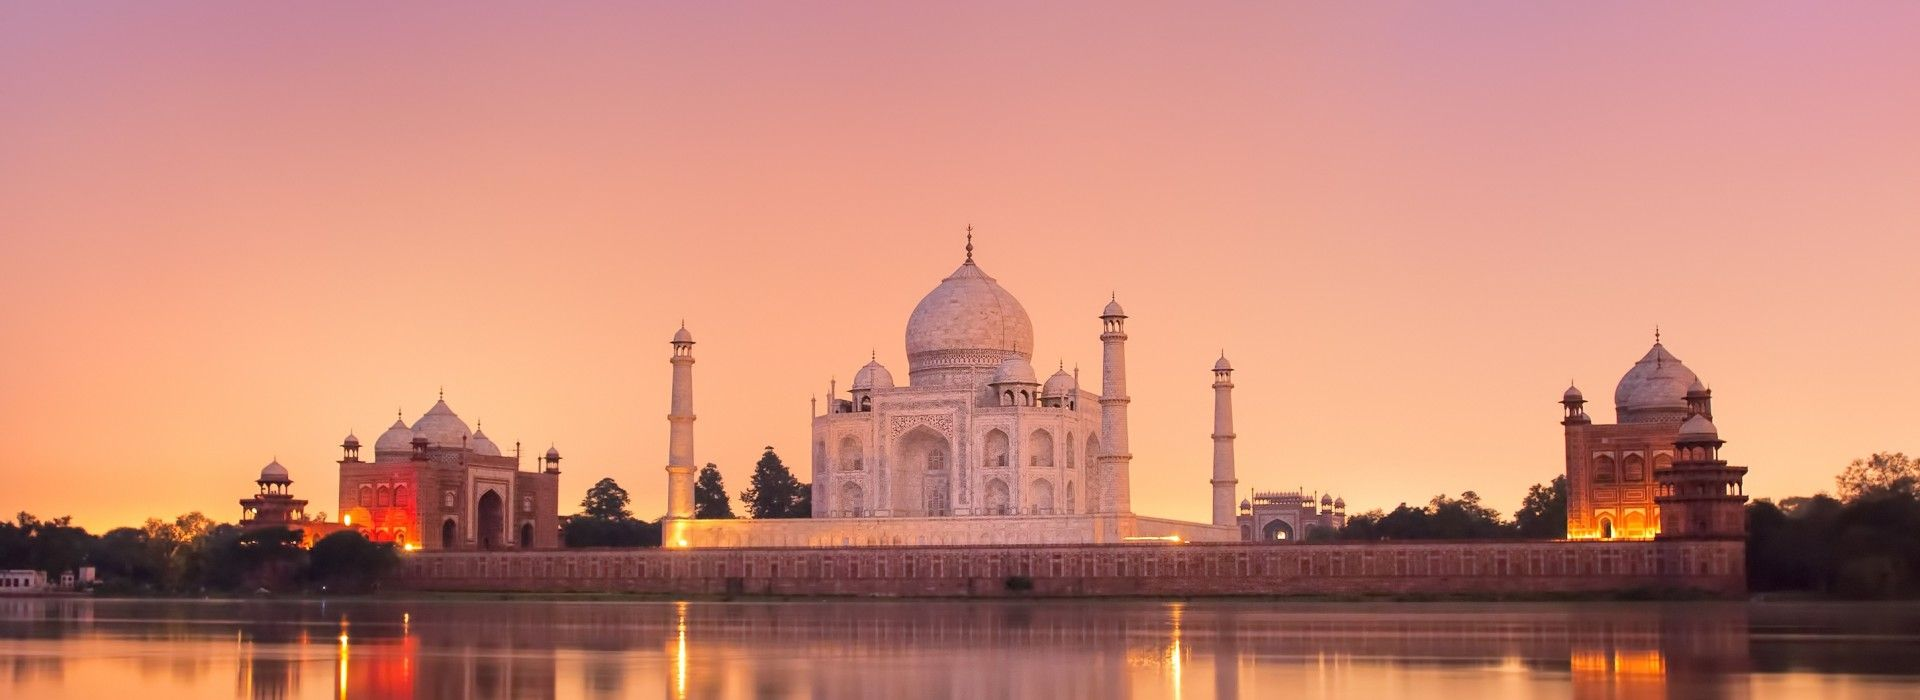 Sightseeing, attractions, culture and history Tours in Jaipur